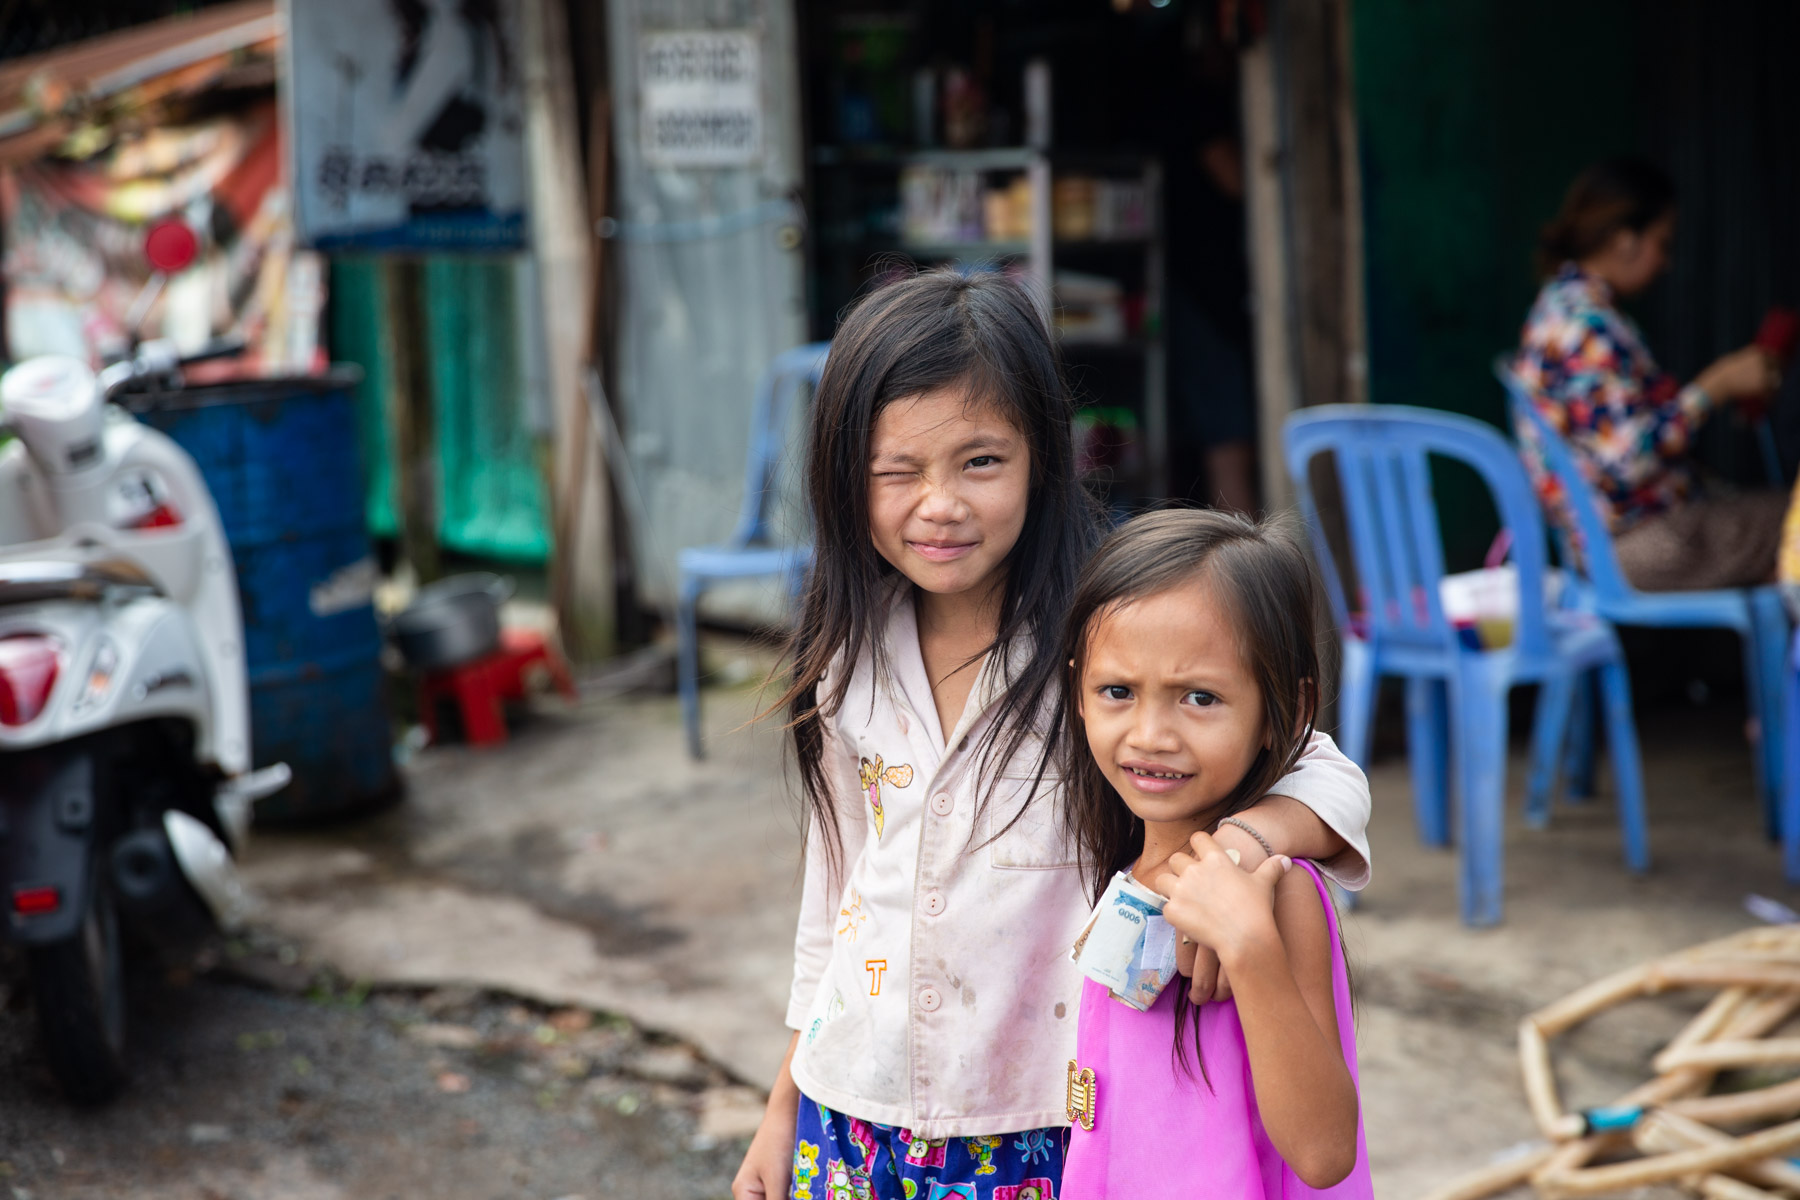 Two young girls portrait